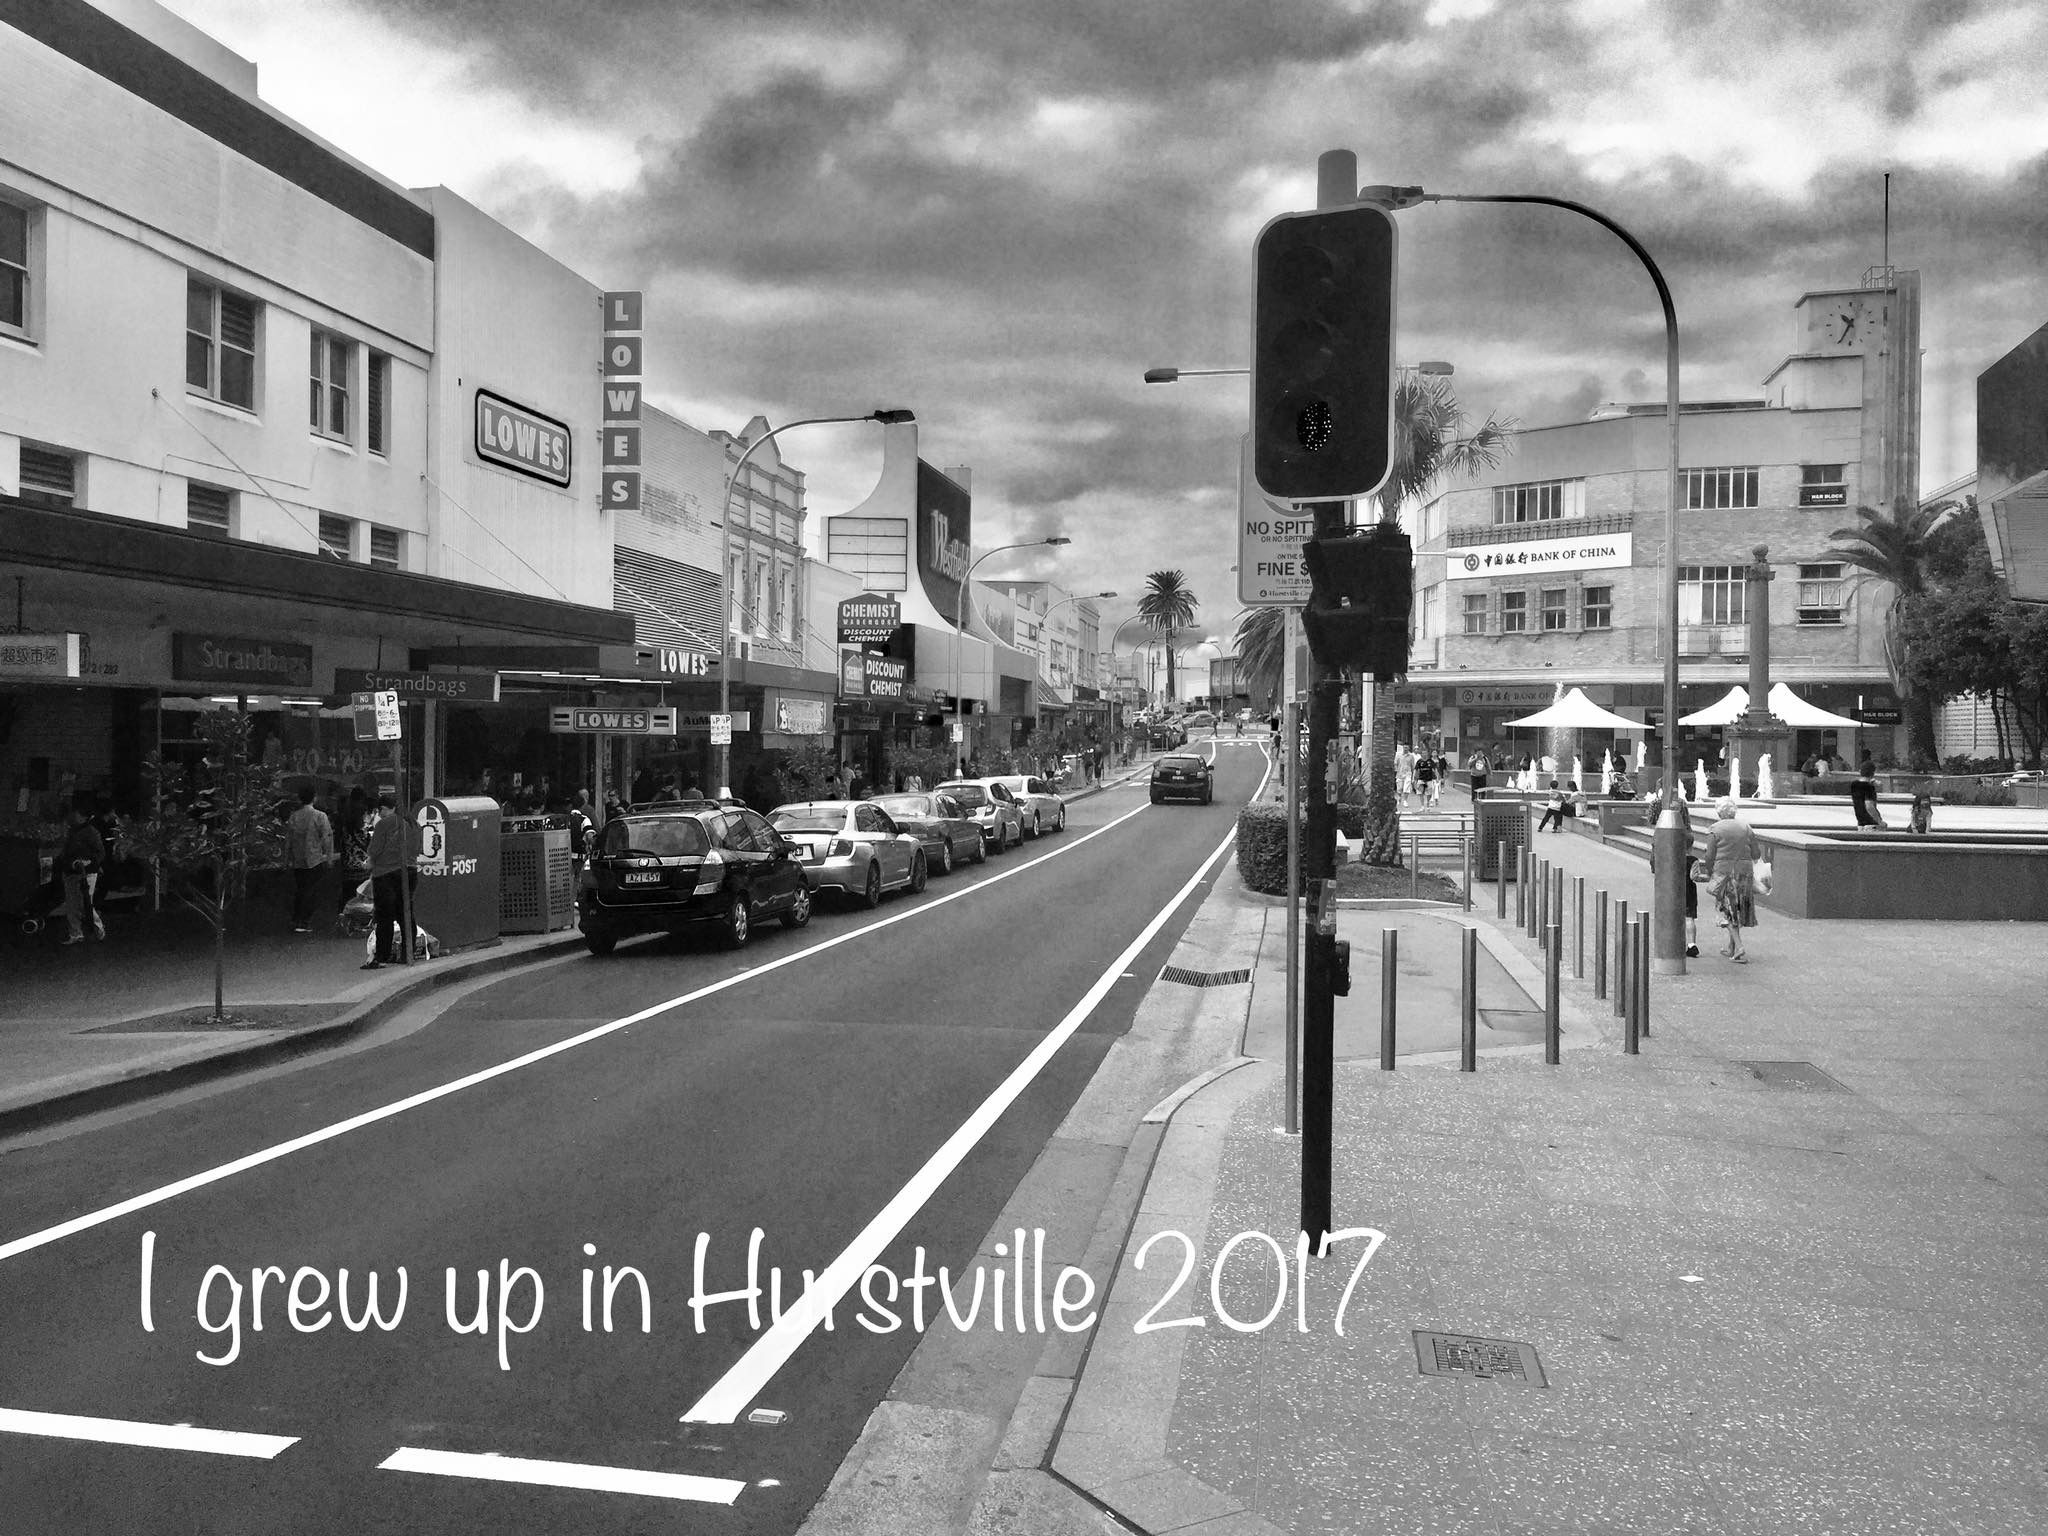 Pin by Sue frances on My home town hurstville Australia